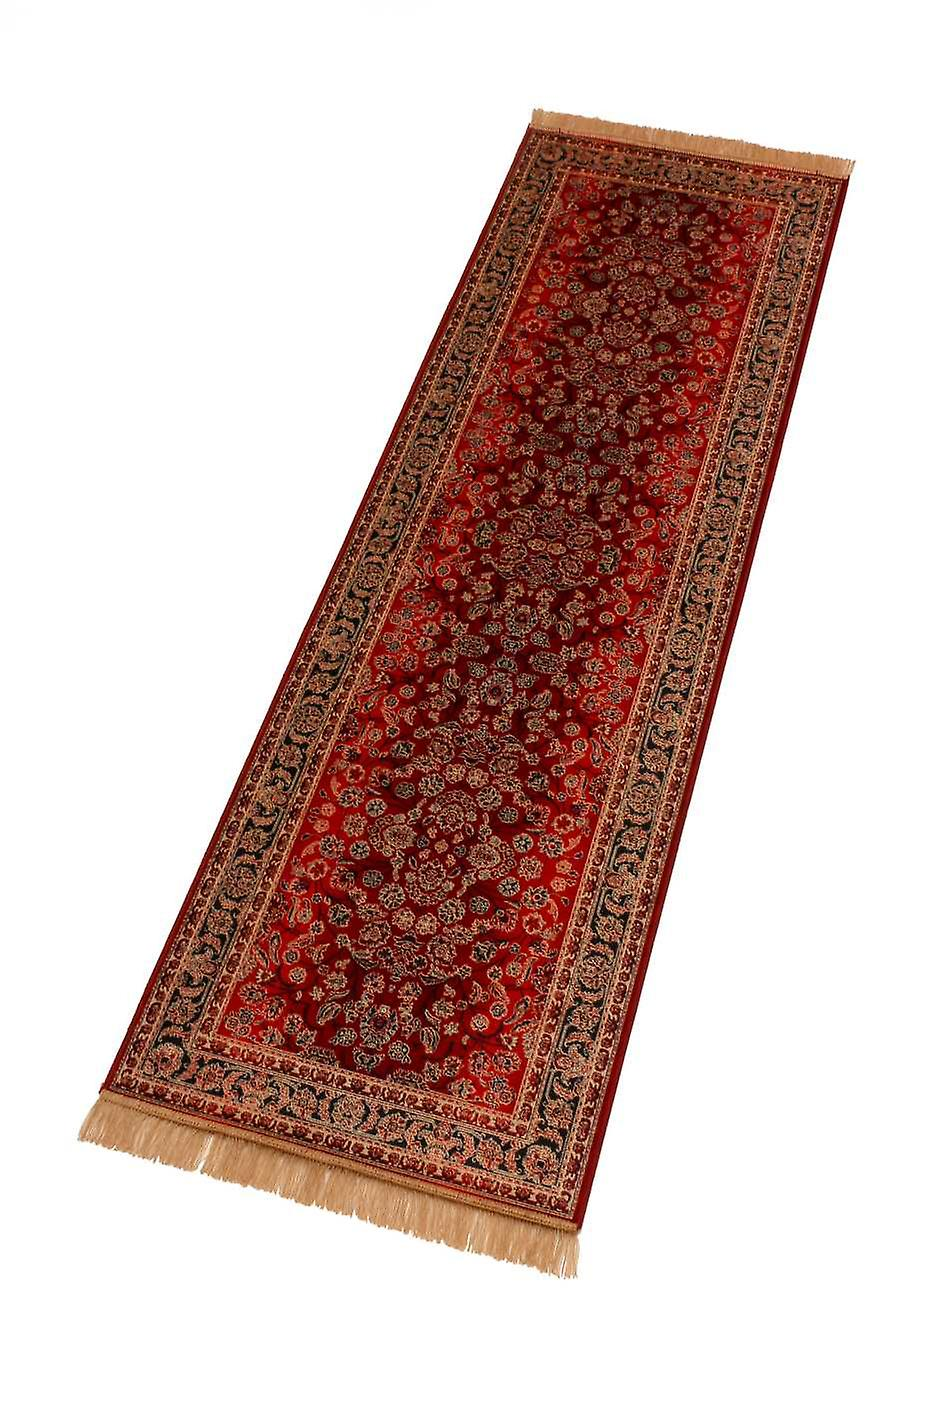 Red Afghan Ziegler Artificial Faux Silk Effect Hall Runner Rugs 5663/12